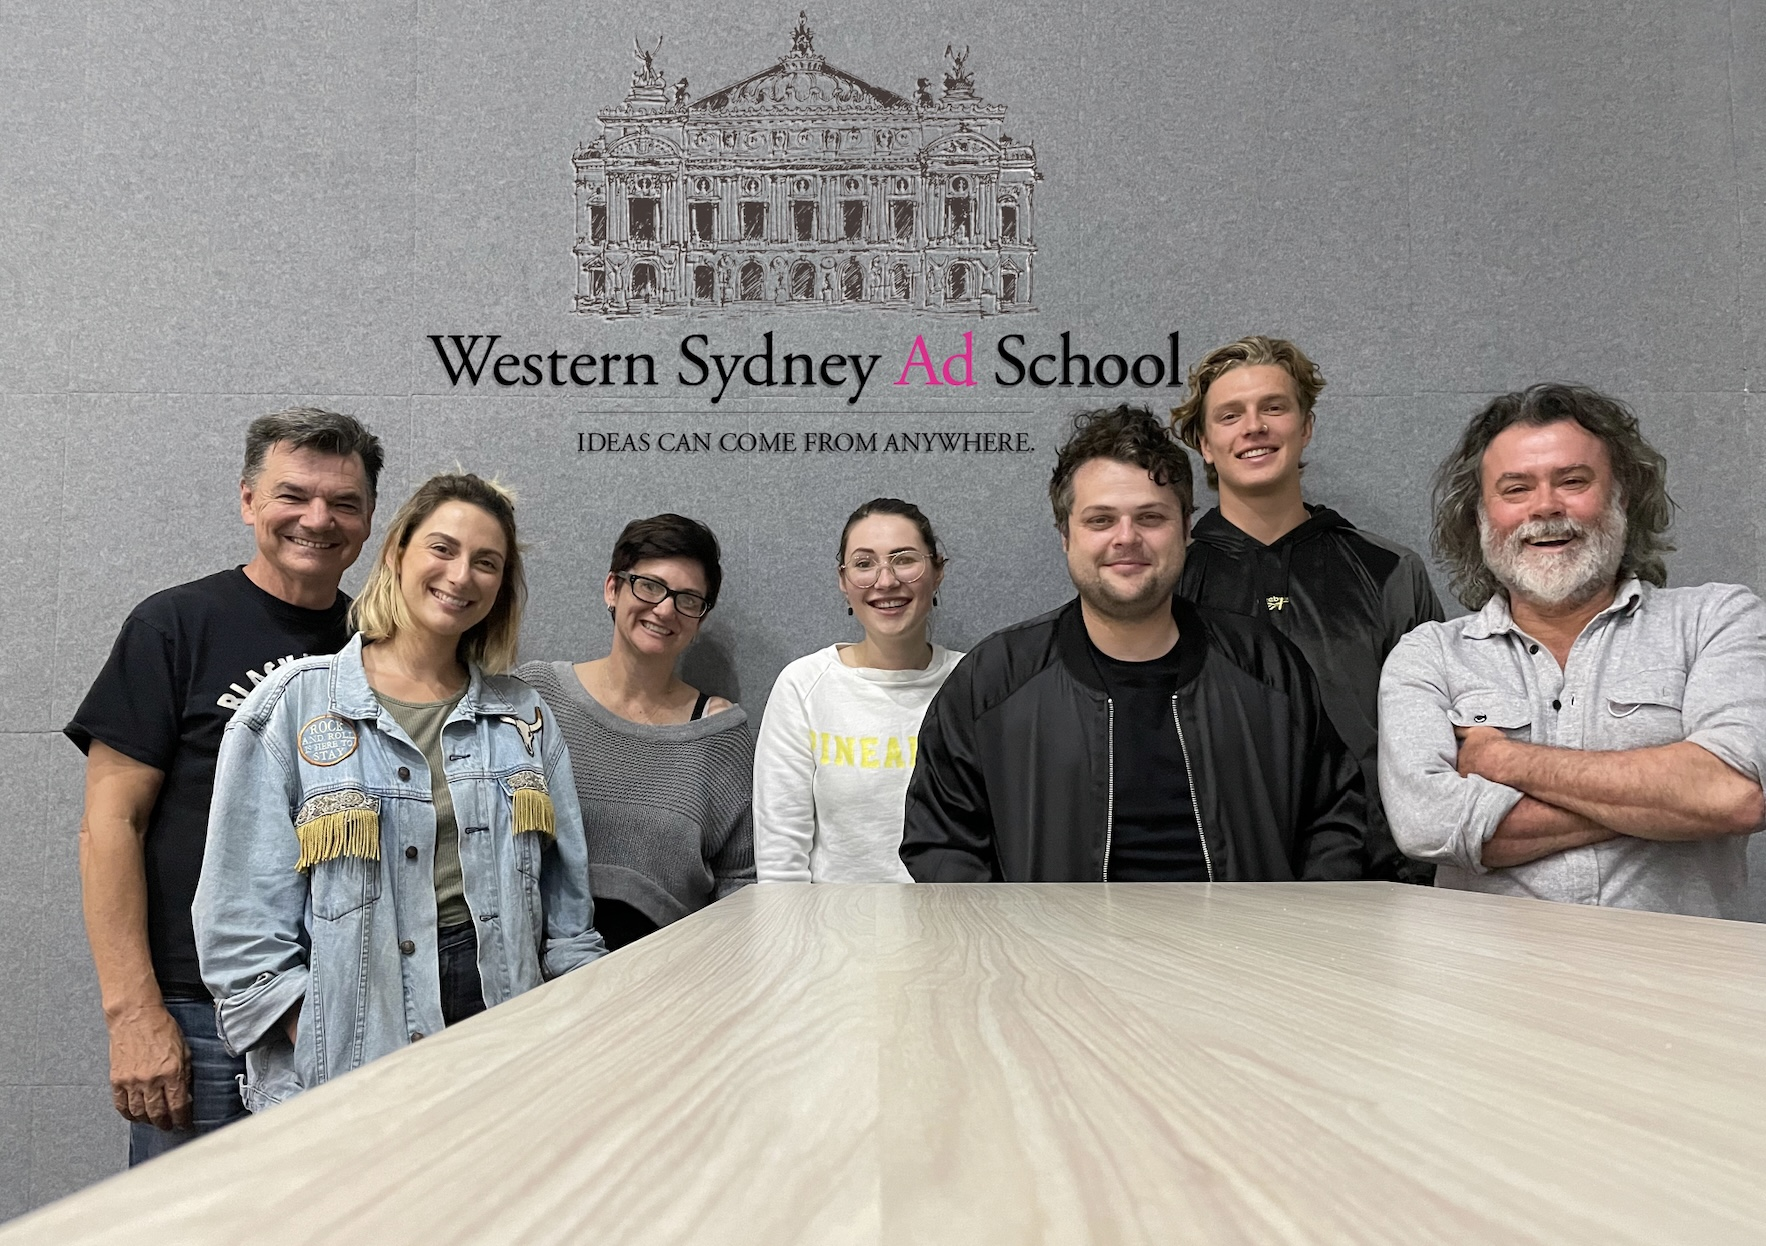 Top agencies come together to support Western Sydney Ad School students with internships